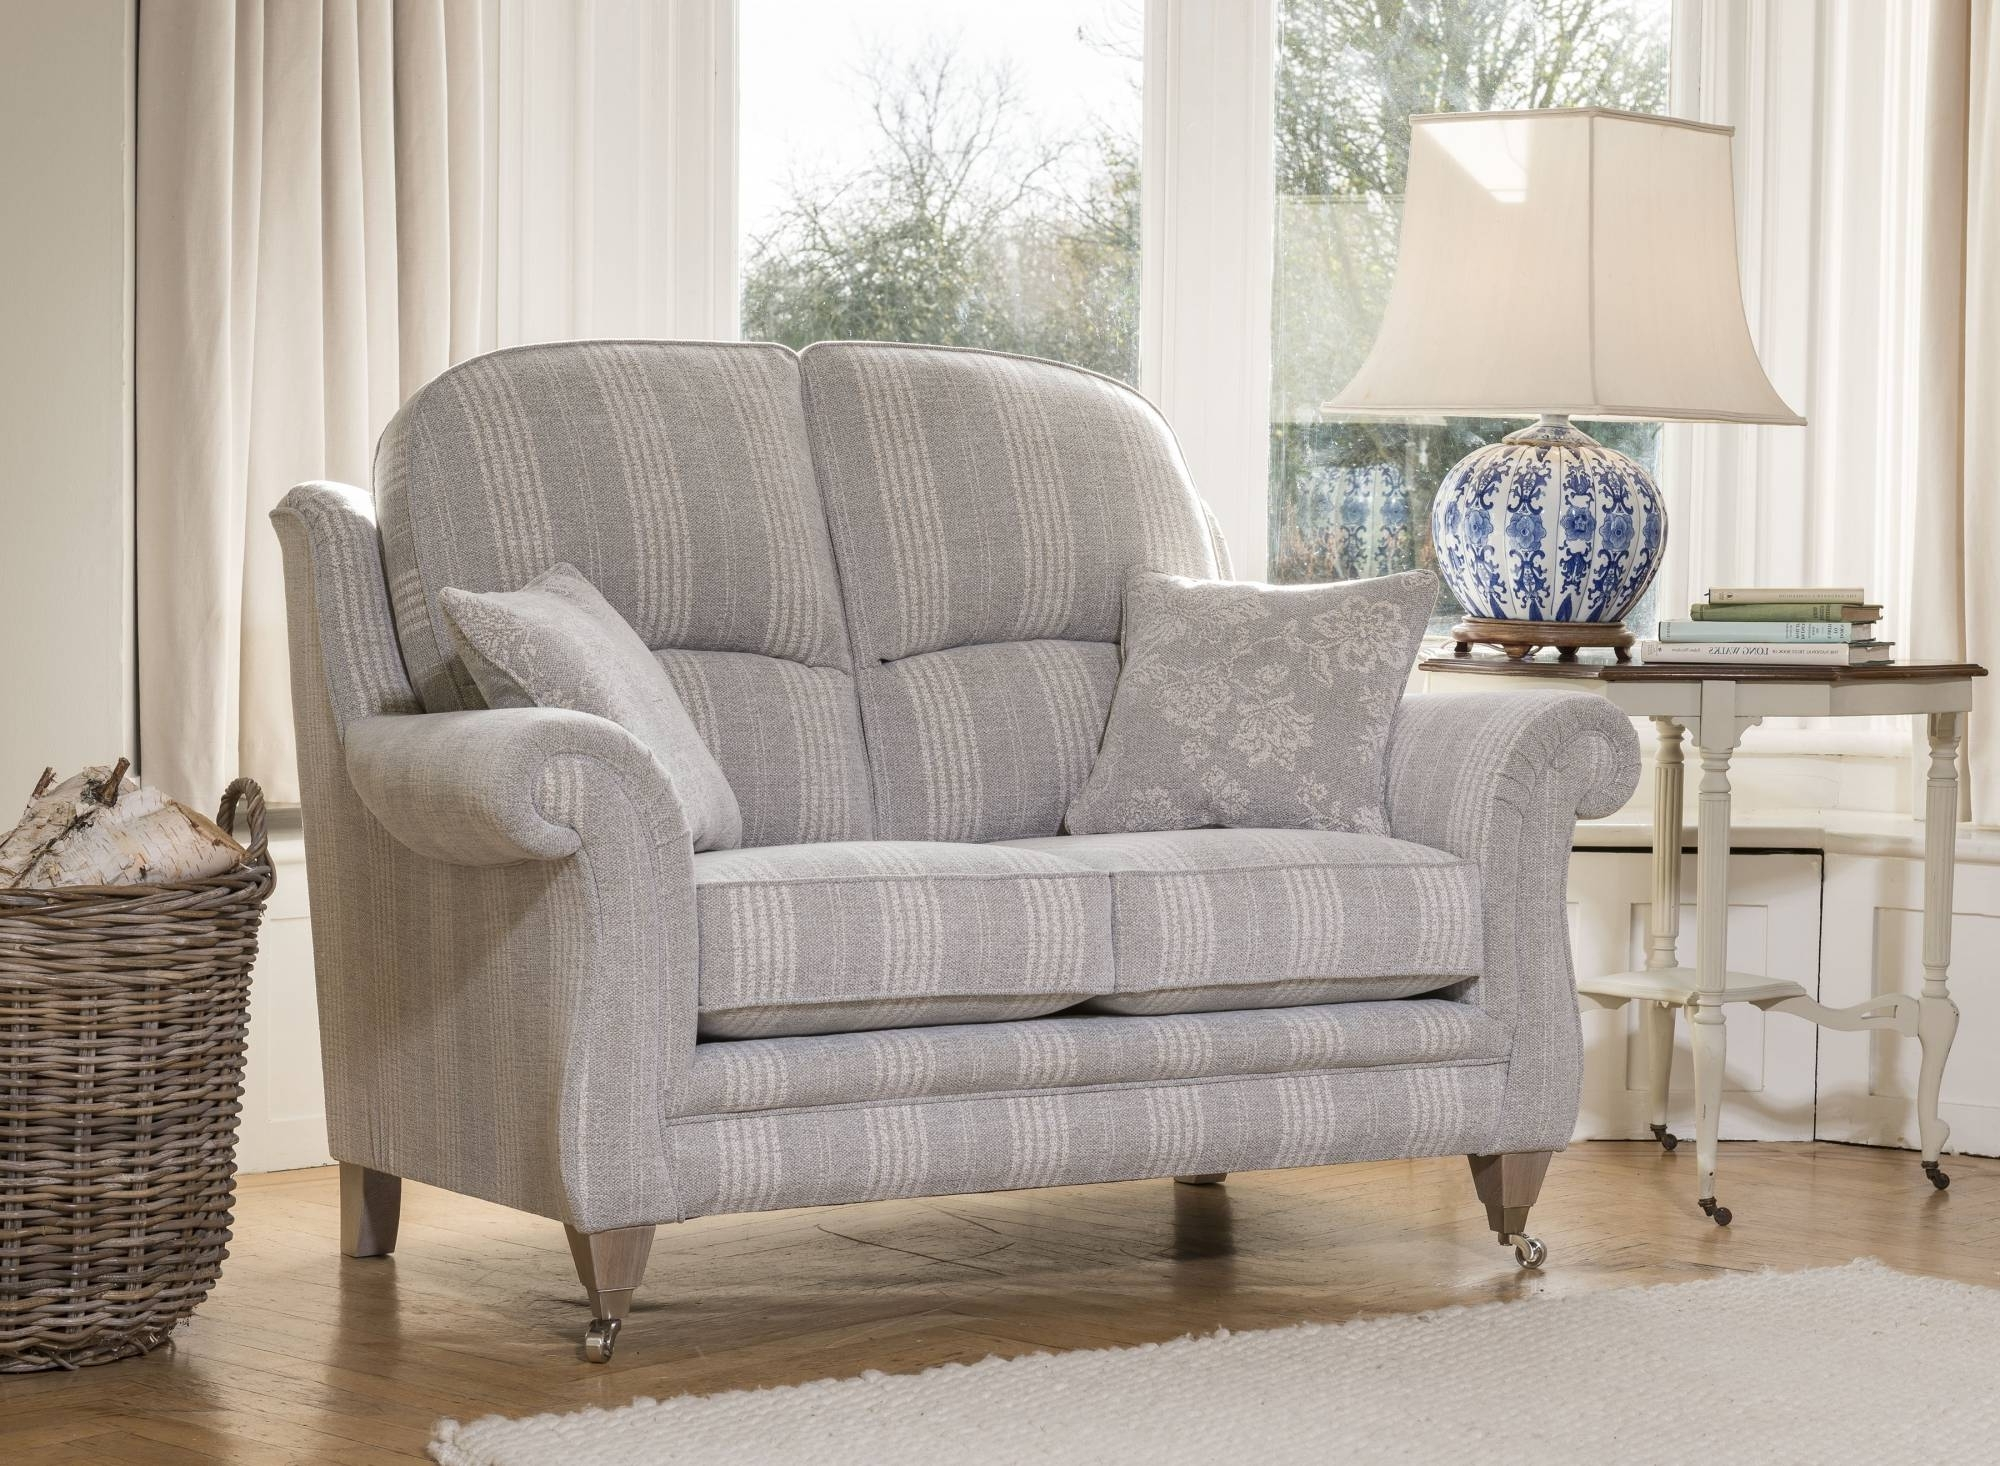 Newest Lovely Small 2 Seater Sofa 11 On Living Room Sofa Ideas With Small For Small 2 Seater Sofas (View 7 of 15)